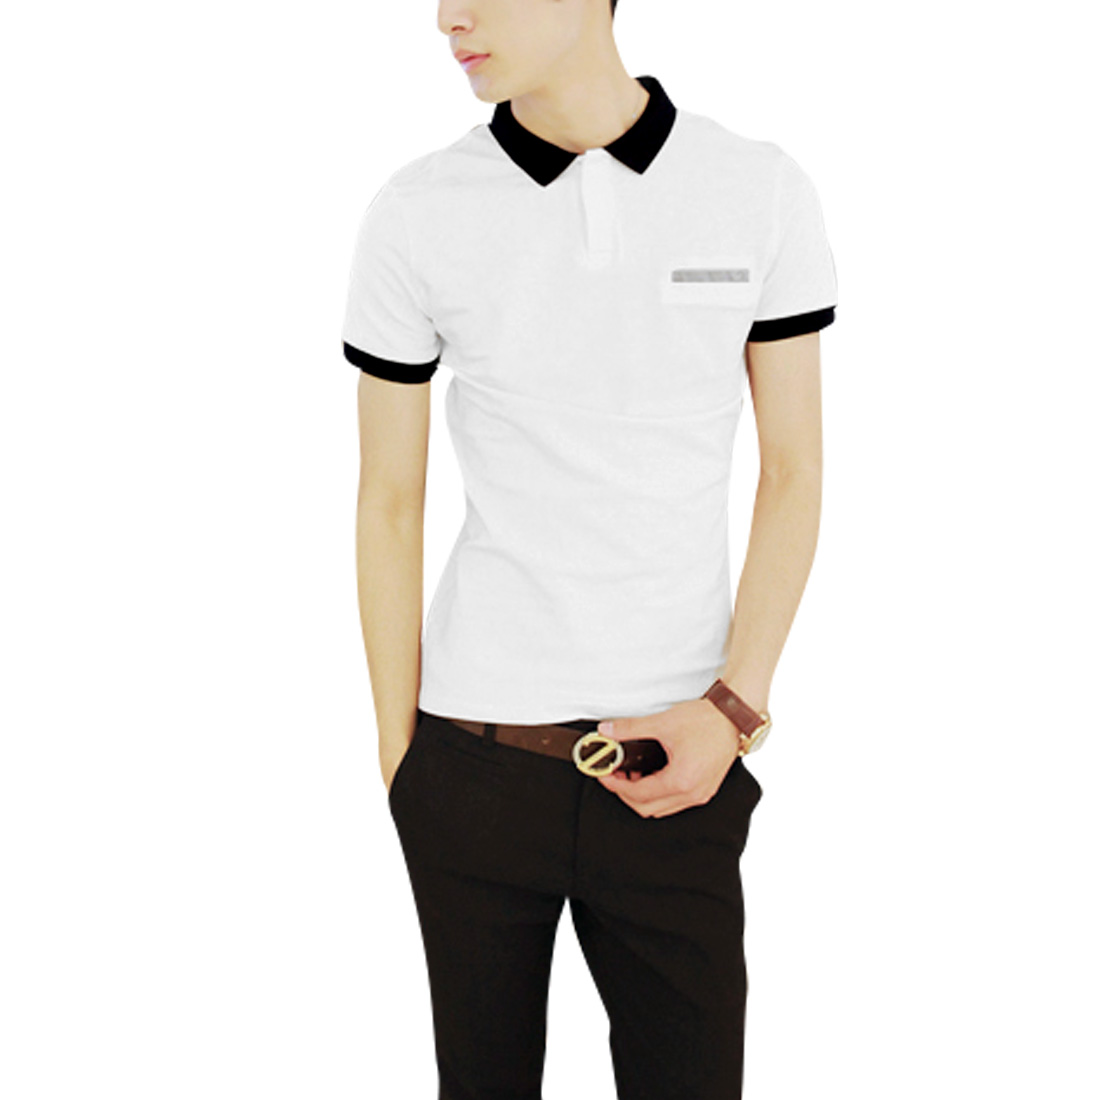 Mens Point Collar Short Sleeve Contrast Color Slim Fit White Polo Shirt M